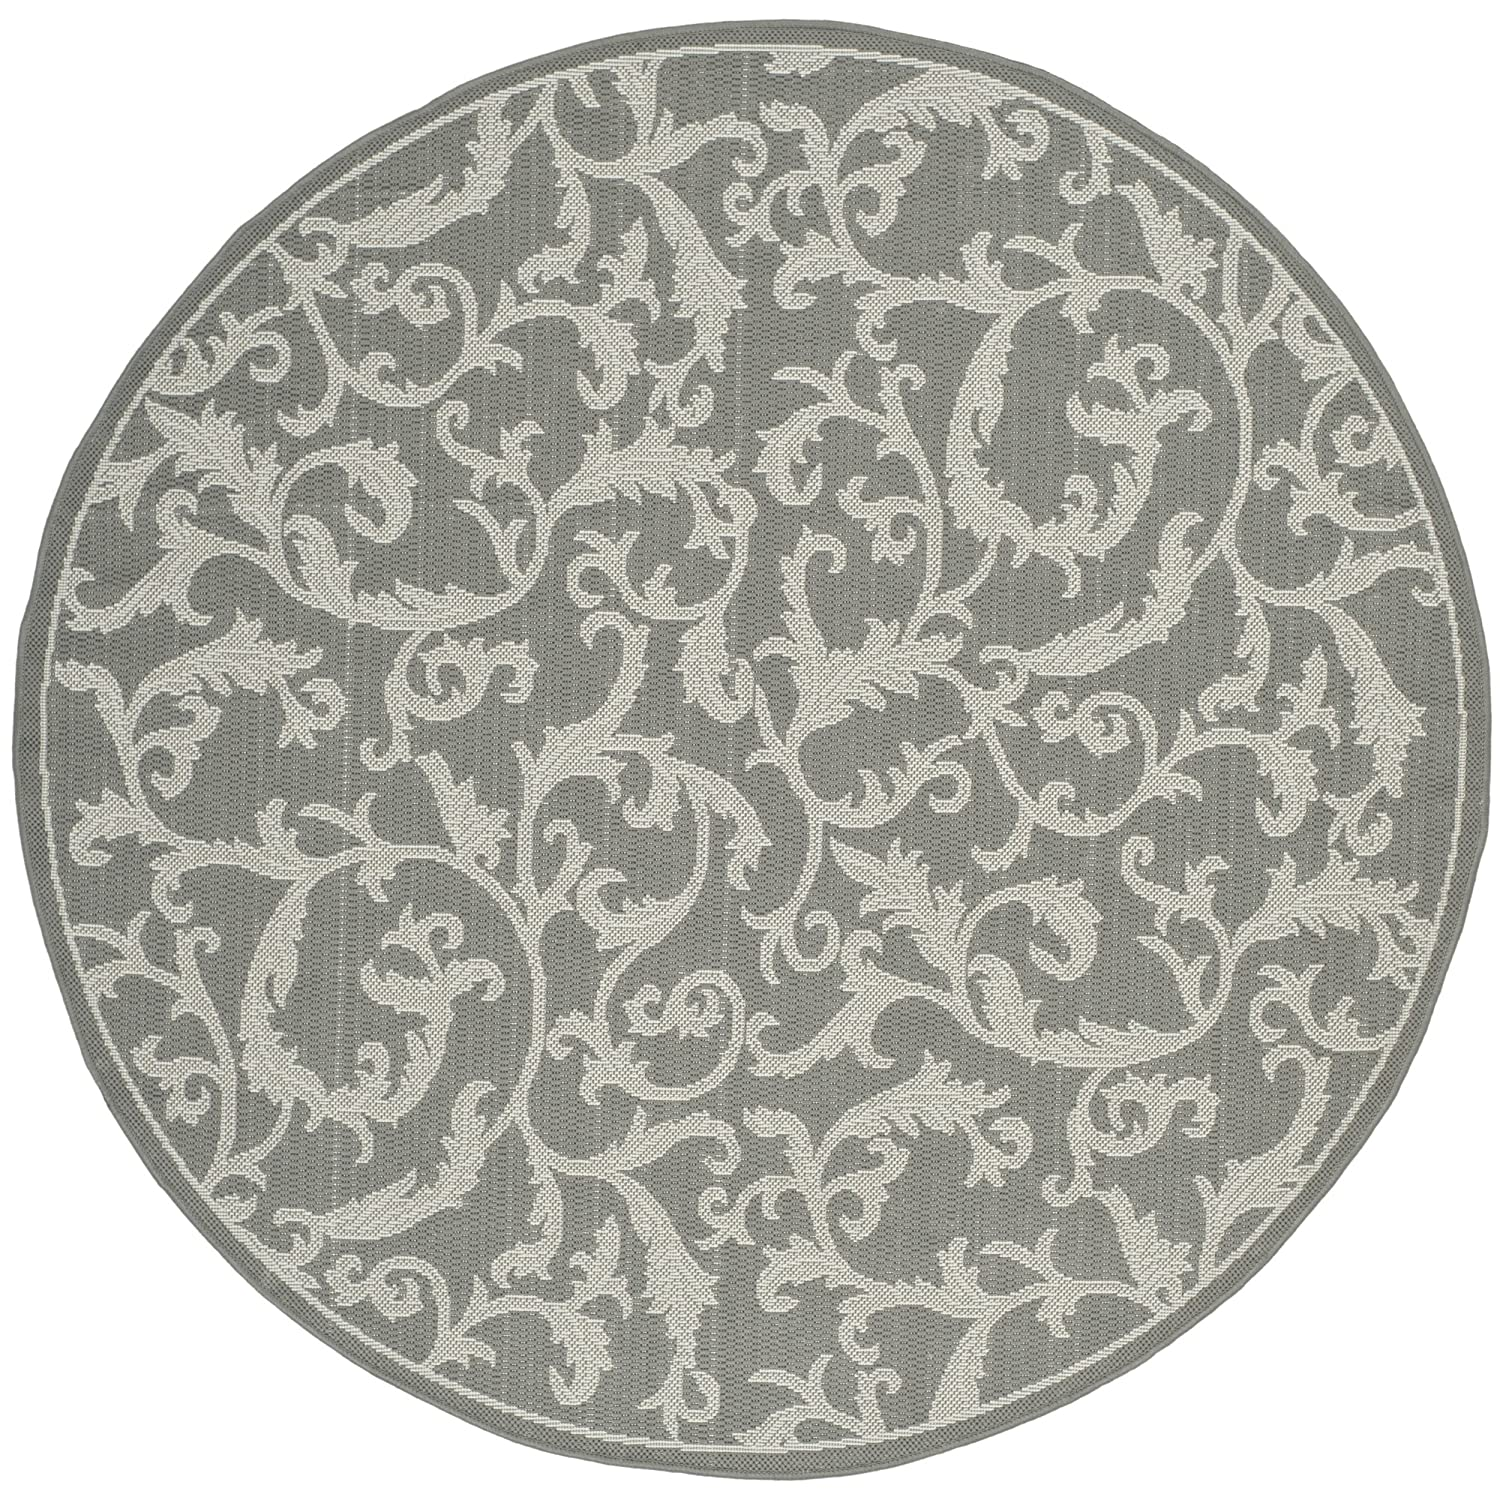 Safavieh Courtyard Collection CY6533-87 Anthracite and Light Grey Indoor  Outdoor Round Area Rug (5'3 Diameter)